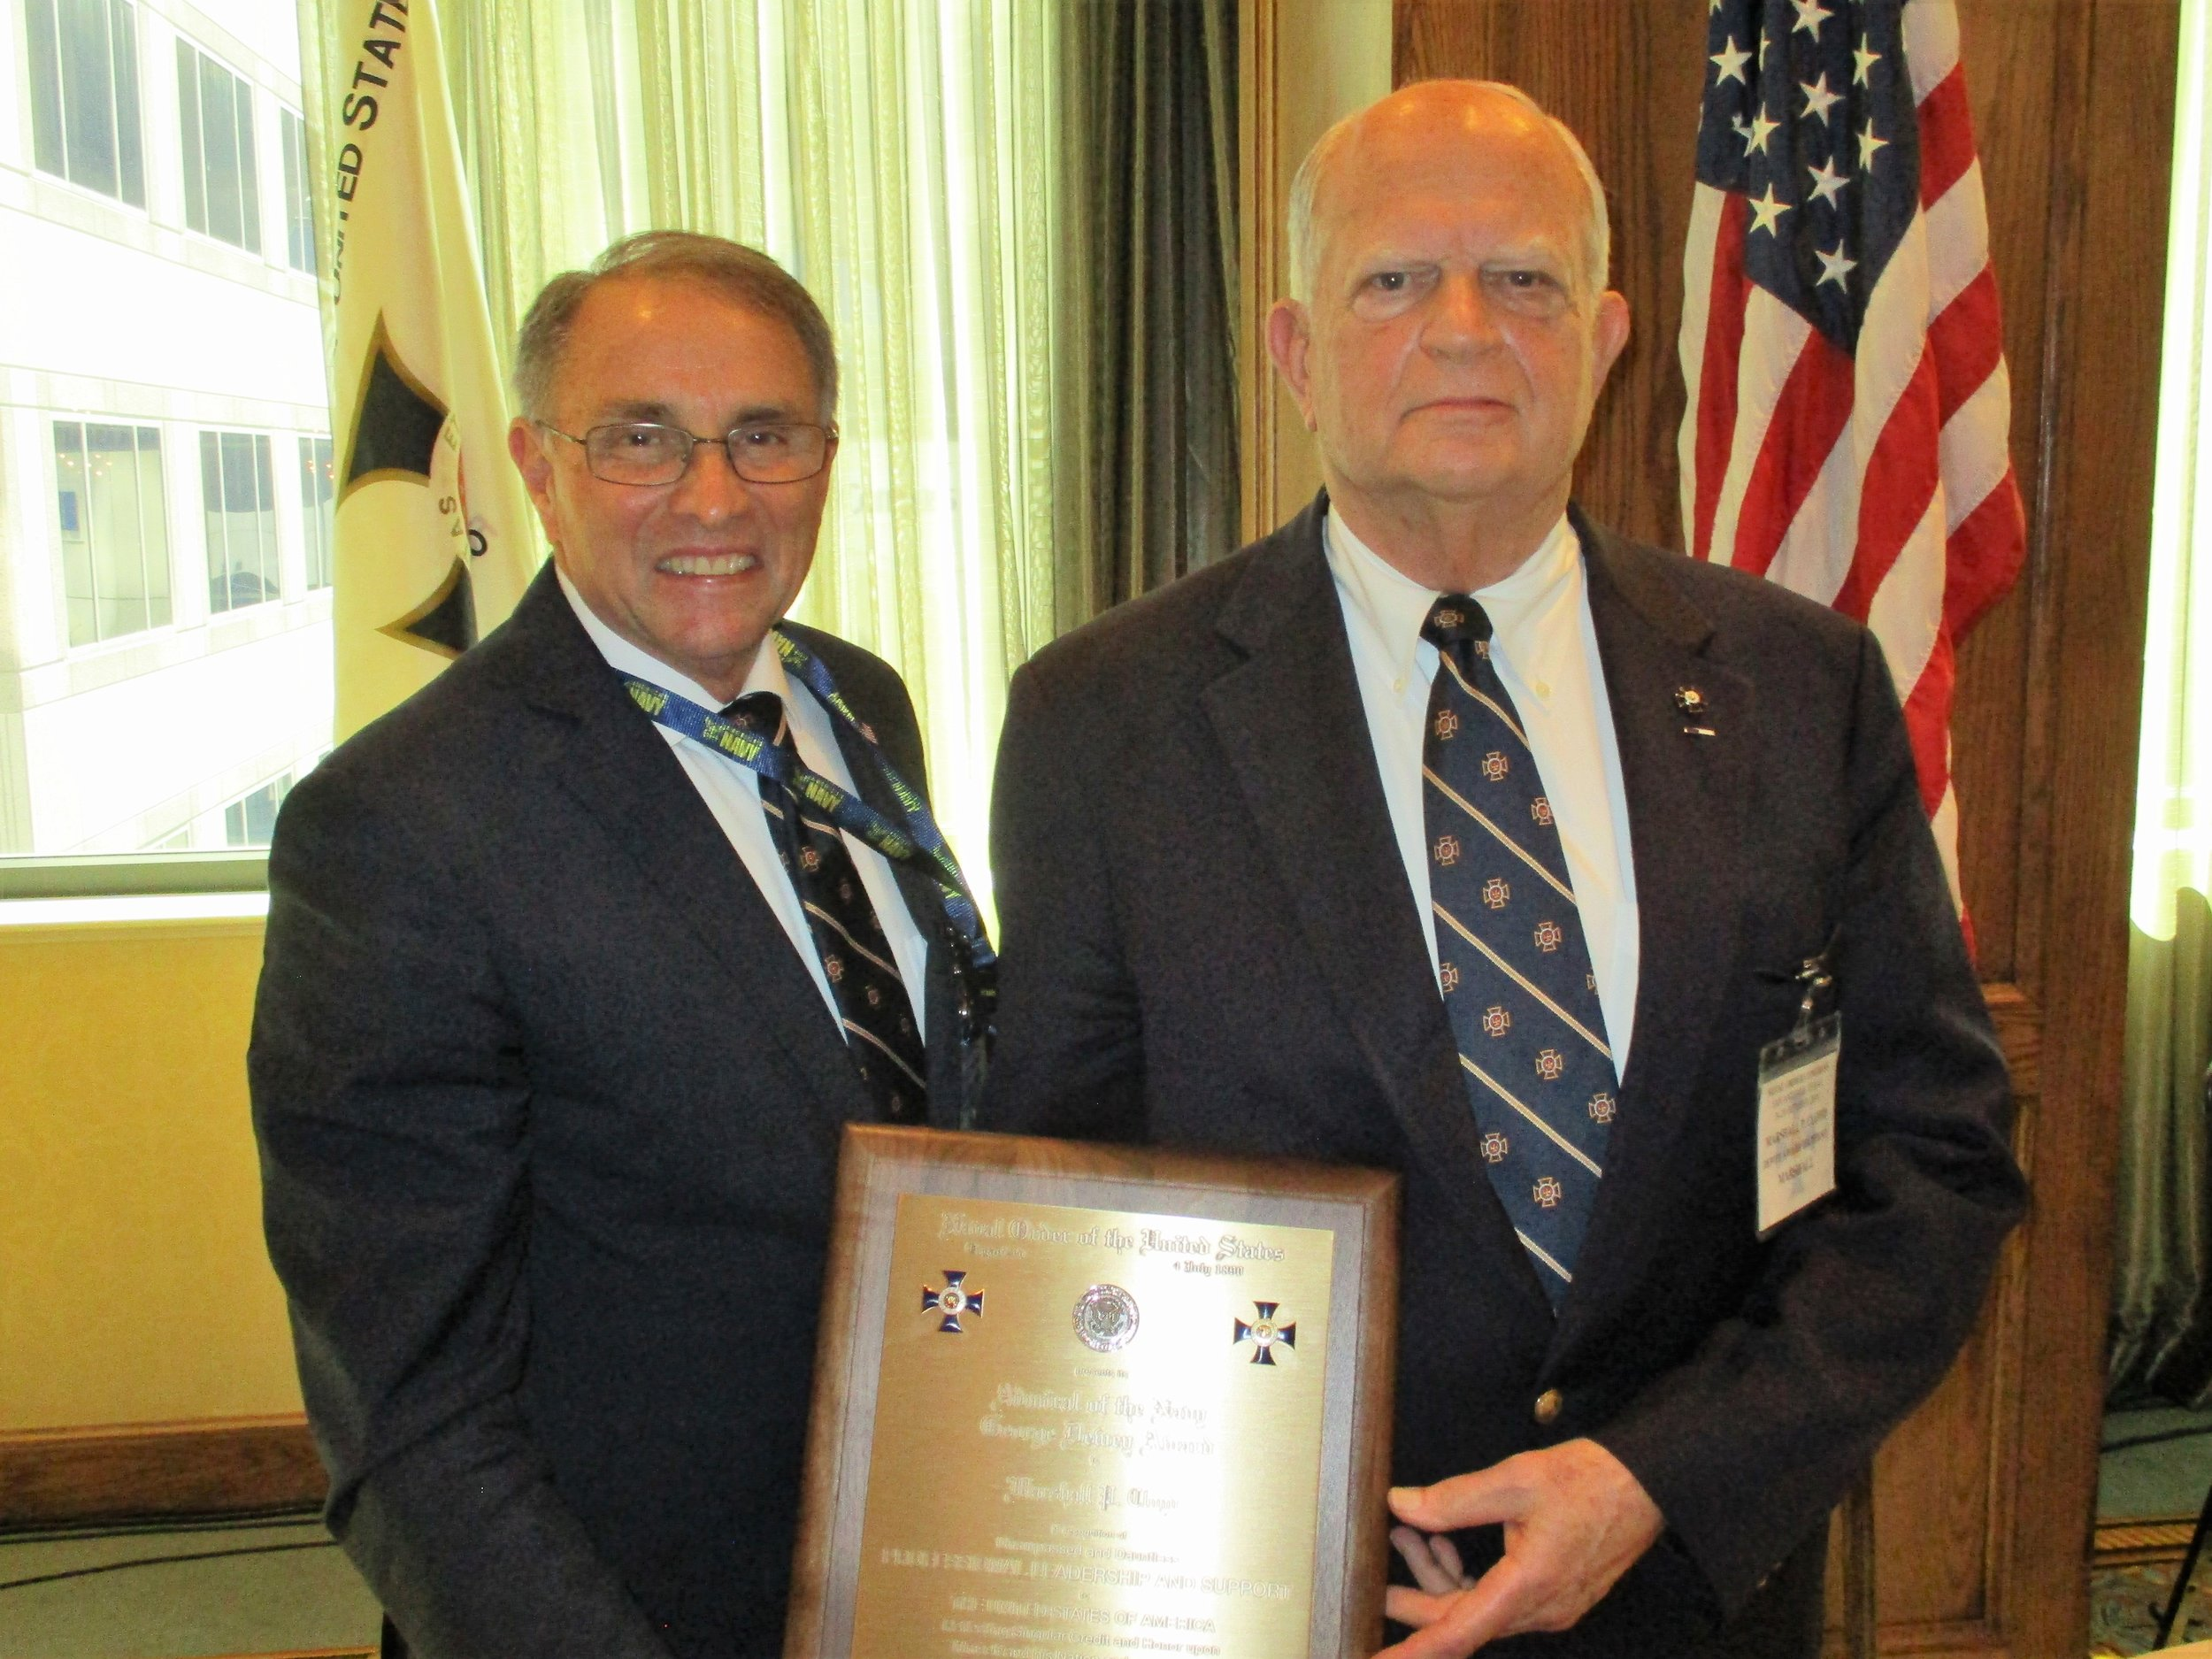 Mr. Marshall P. Cloyd (right) was awarded the Admiral of the Navy George Dewey Award by CAPT Paul Crissy, USCG (Ret.)